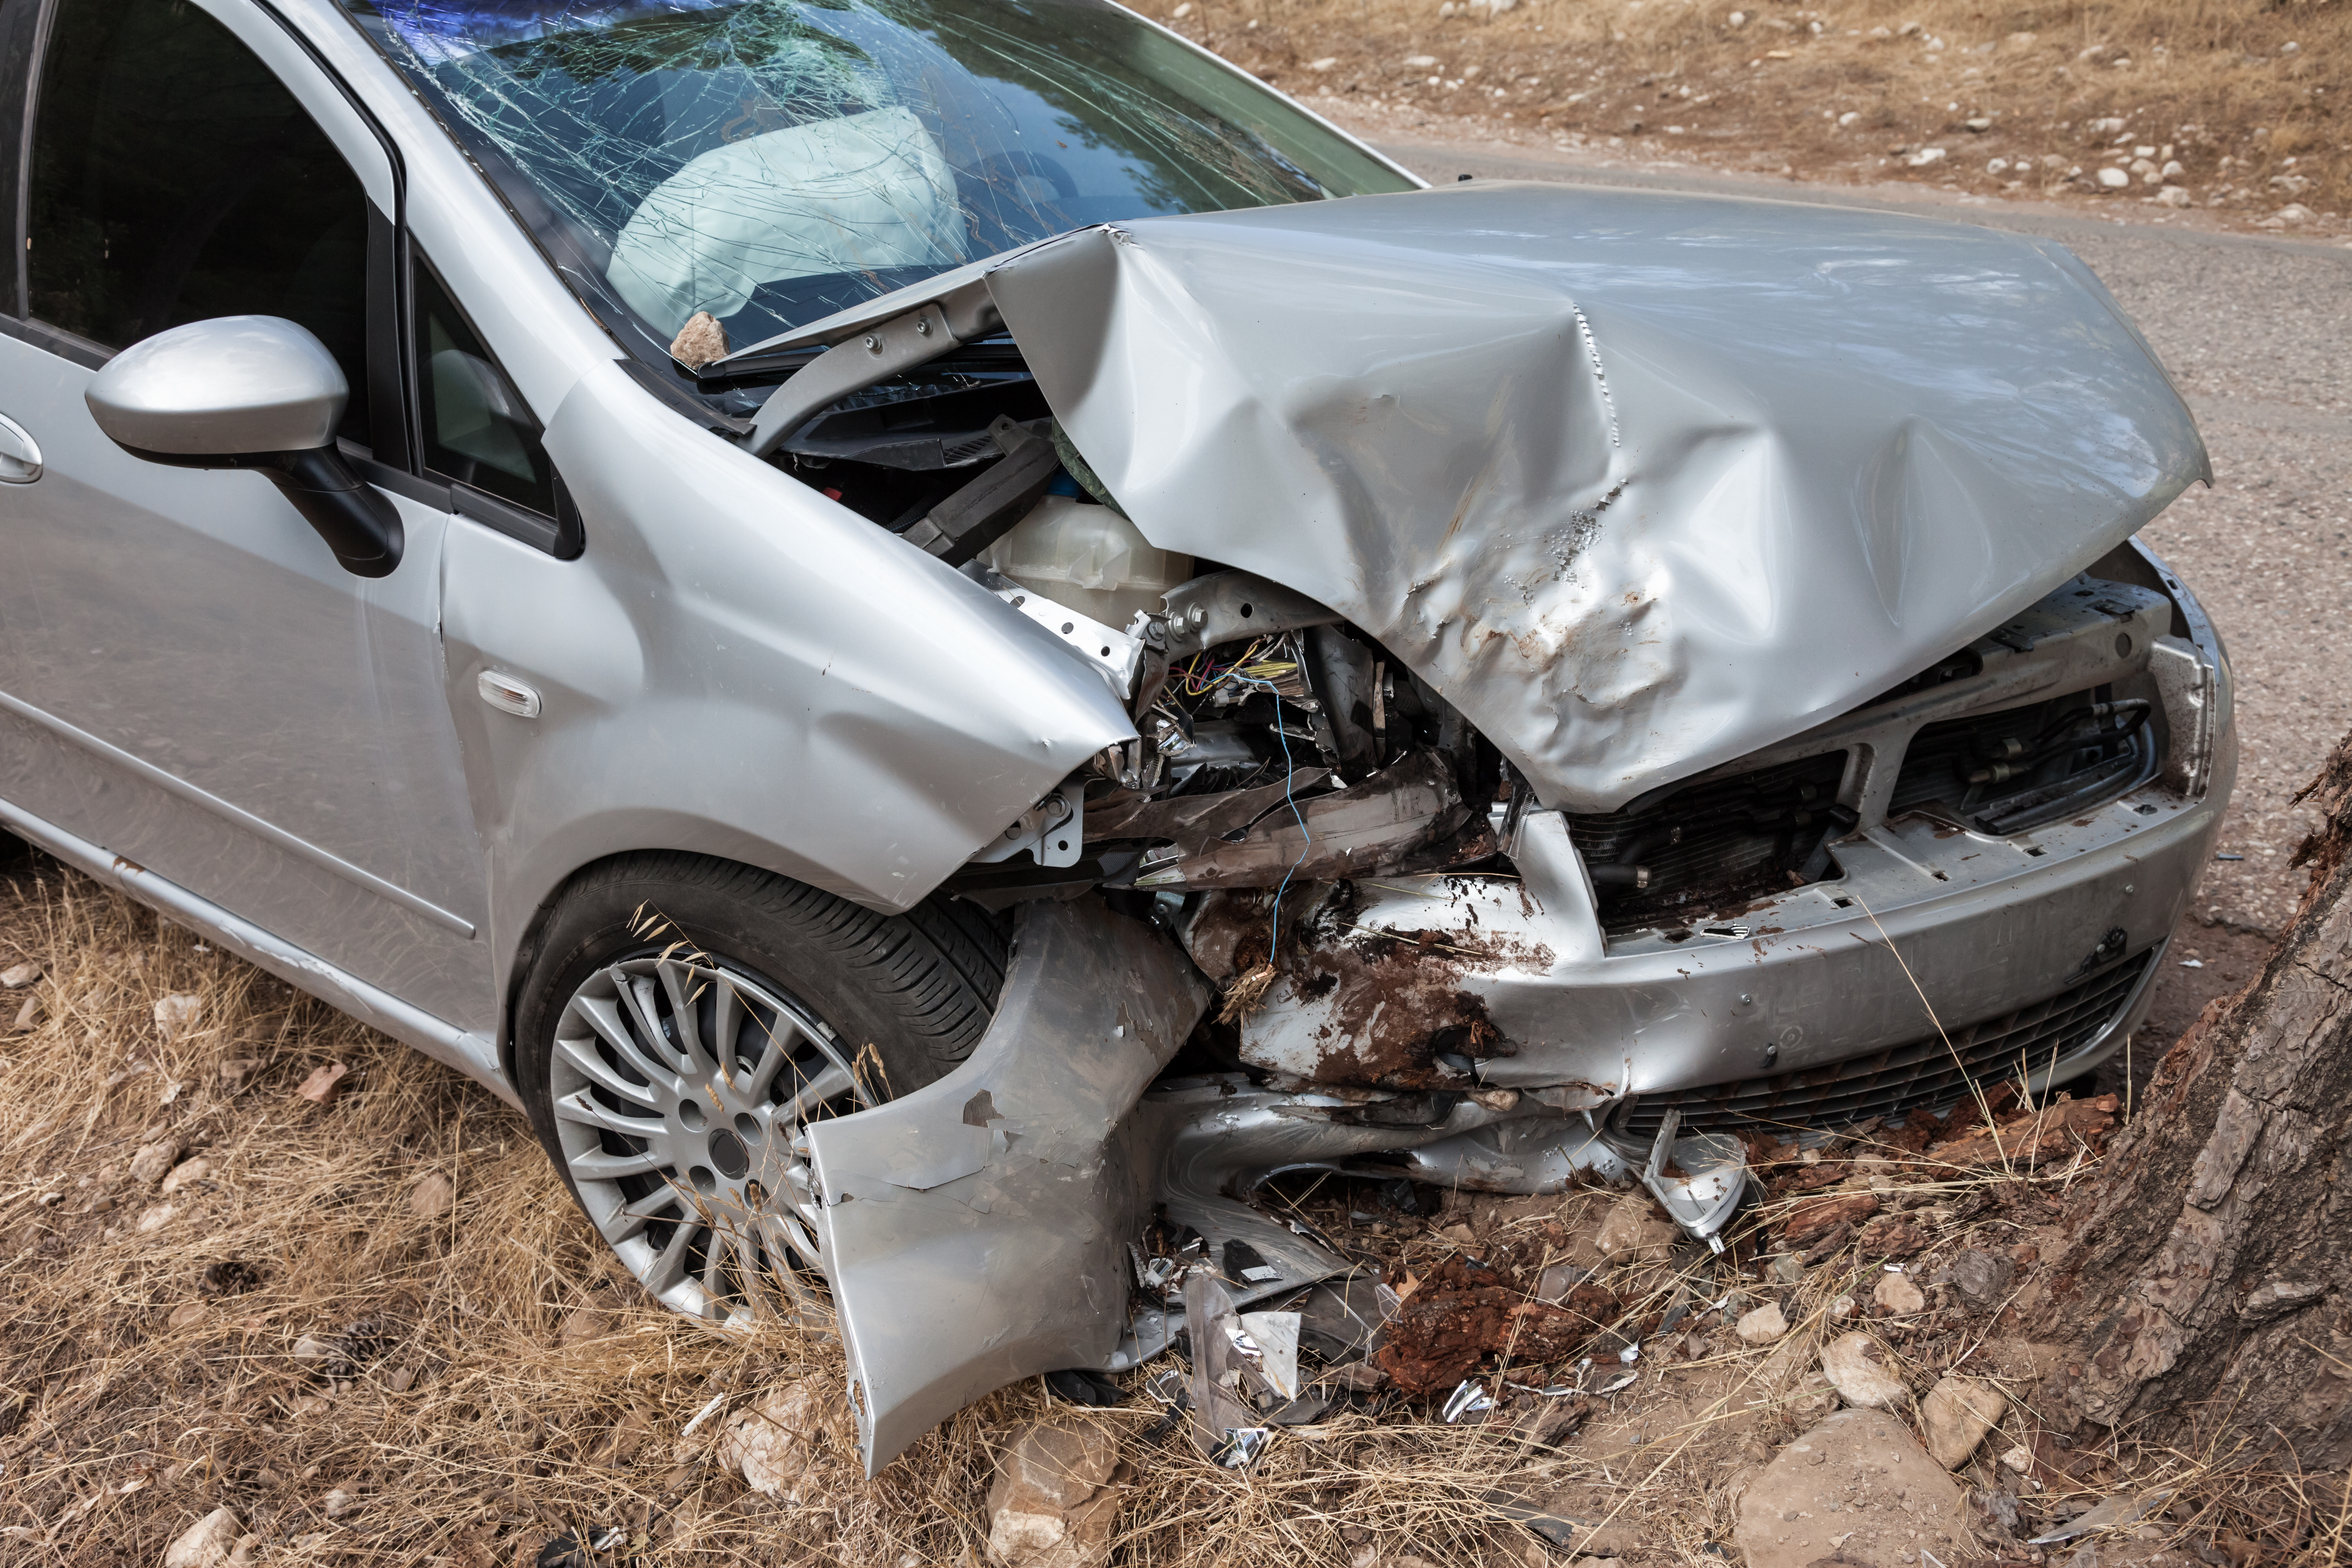 Wrecked Cars for Sale Near Me Best Of the Best Way to Deal with Wrecked Vehicles